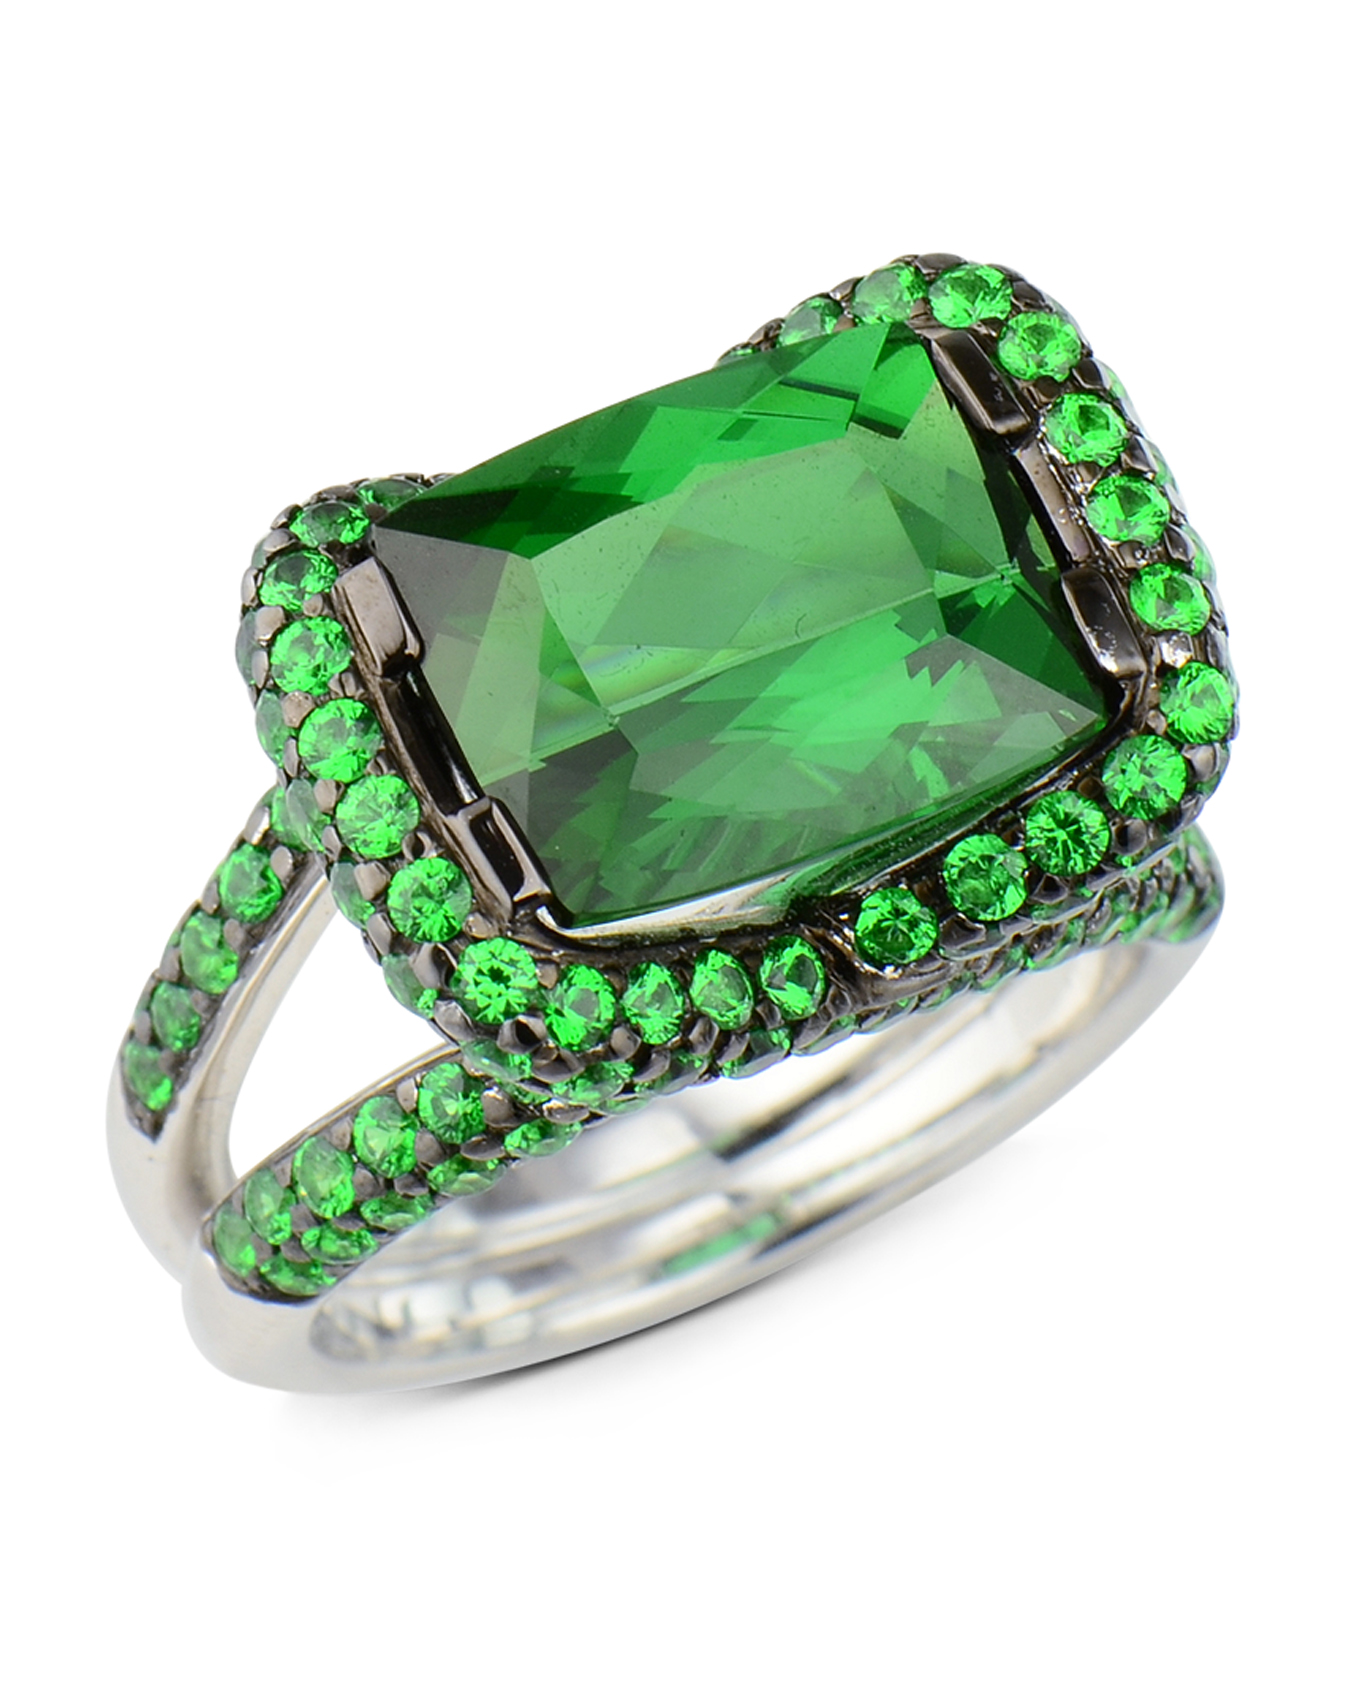 wedding natural pin ring green tourmaline october diamond real engagement band oval cut rings